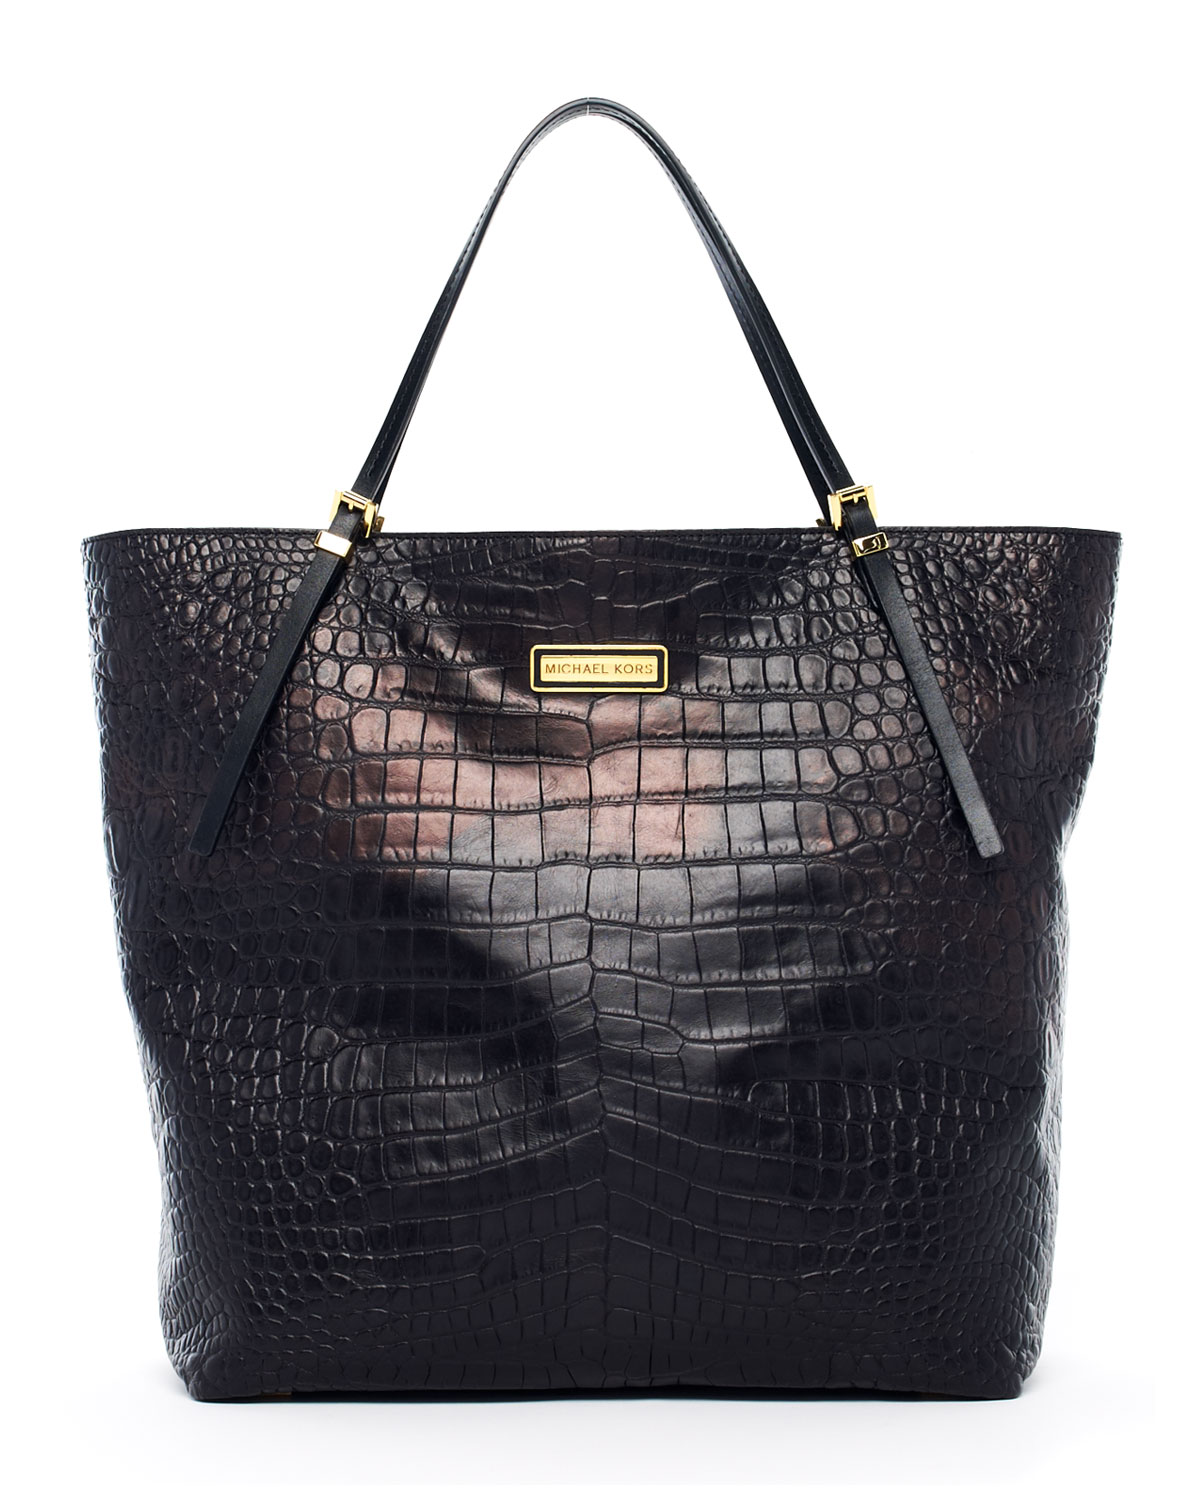 Michael Kors Gia Large Slouchy Tote Black In Animal Black